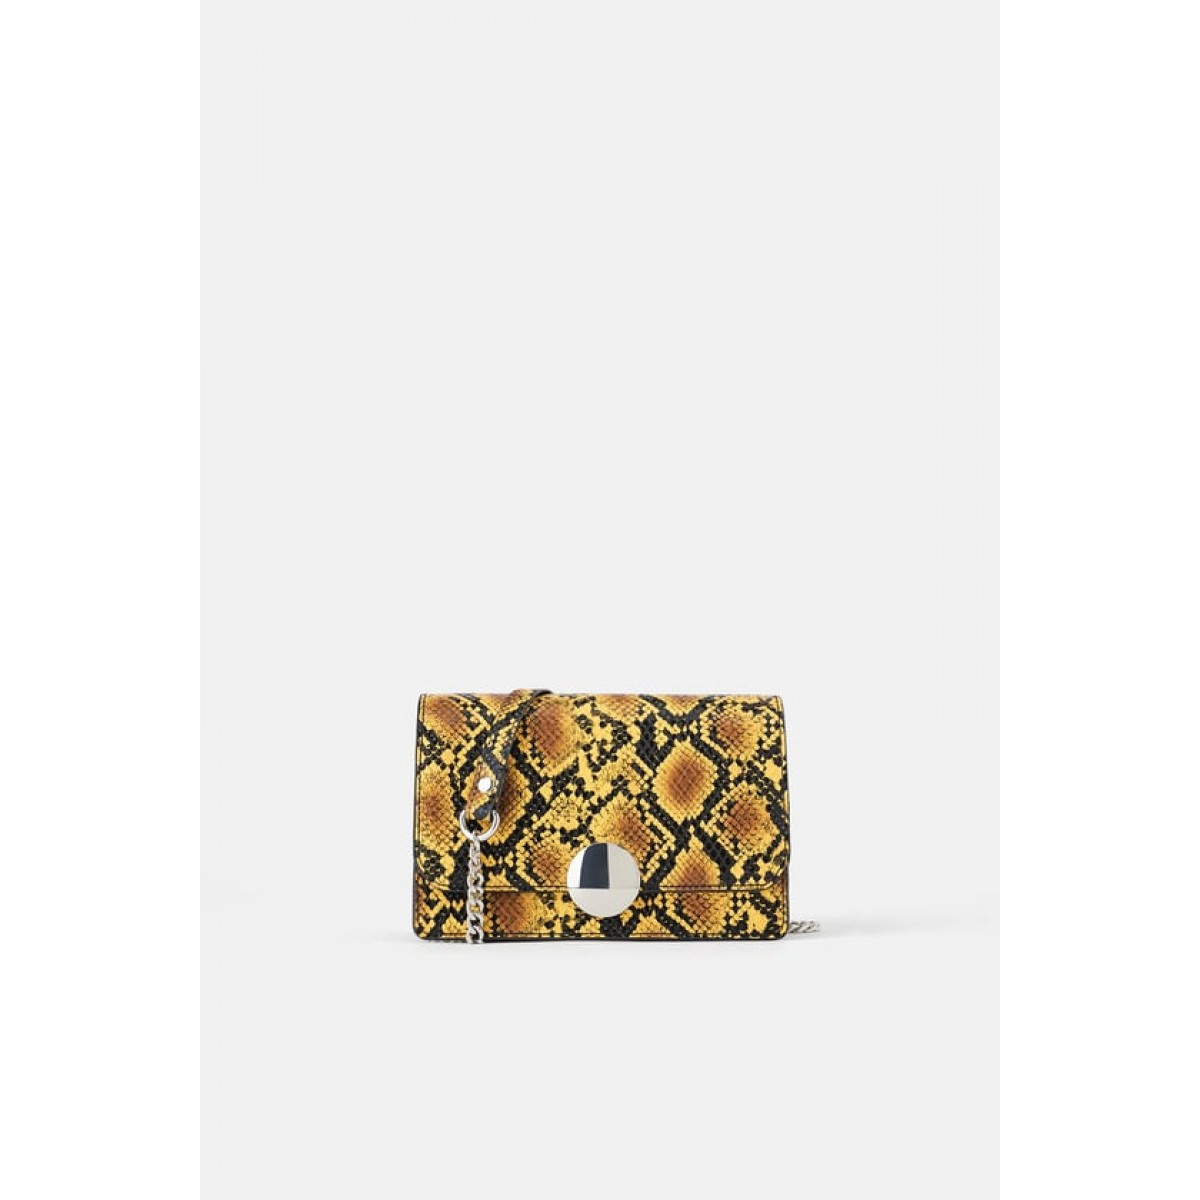 Zara Animal Print Crossbody Bag